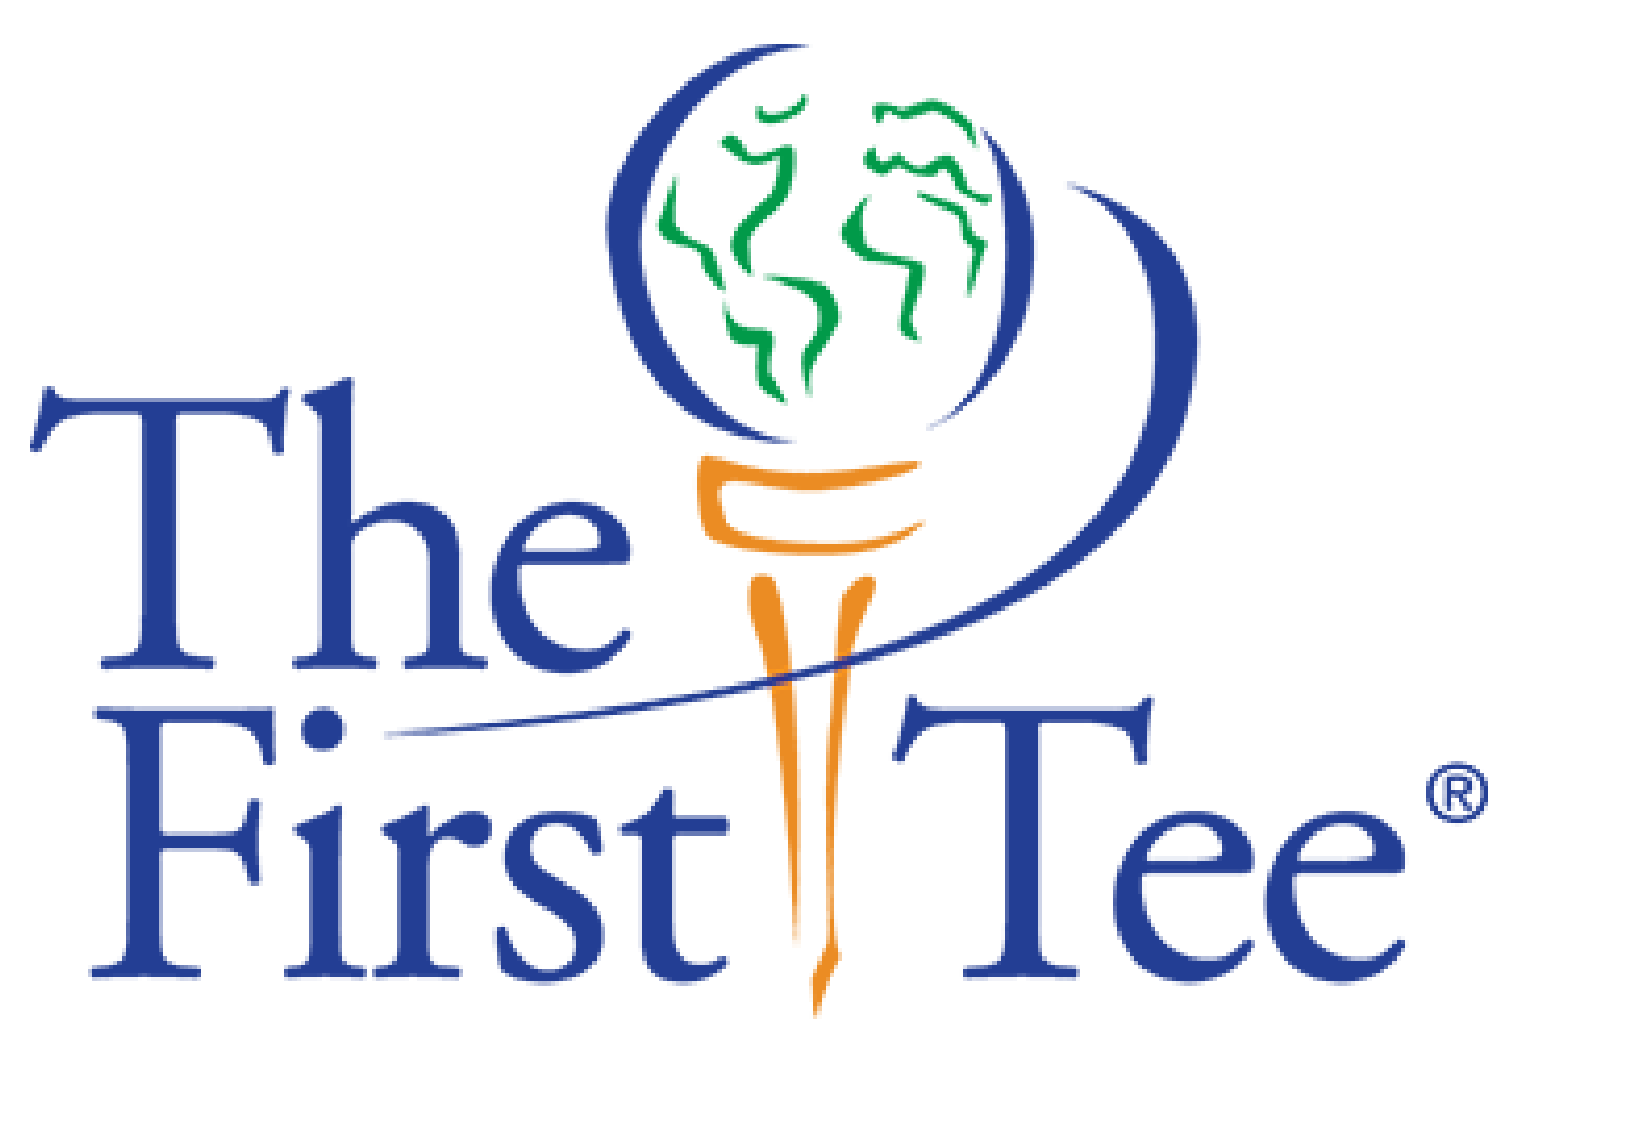 first tee.png